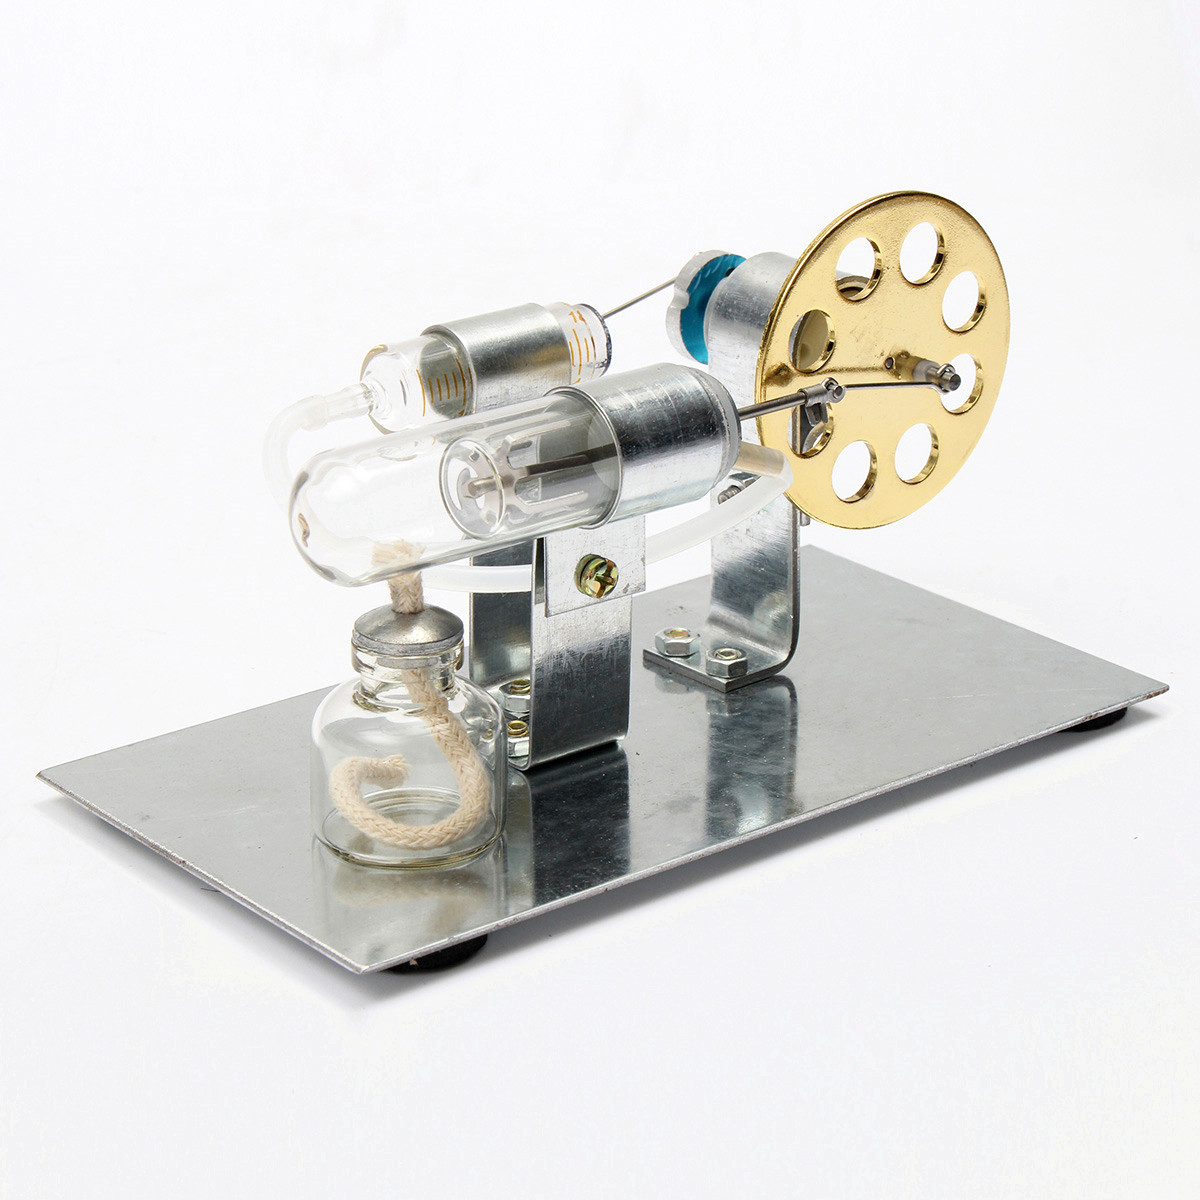 Mini Hot Air Stirling Engine hot air Motor Model Science Educational Steam Power Toy Physics Electricity Education